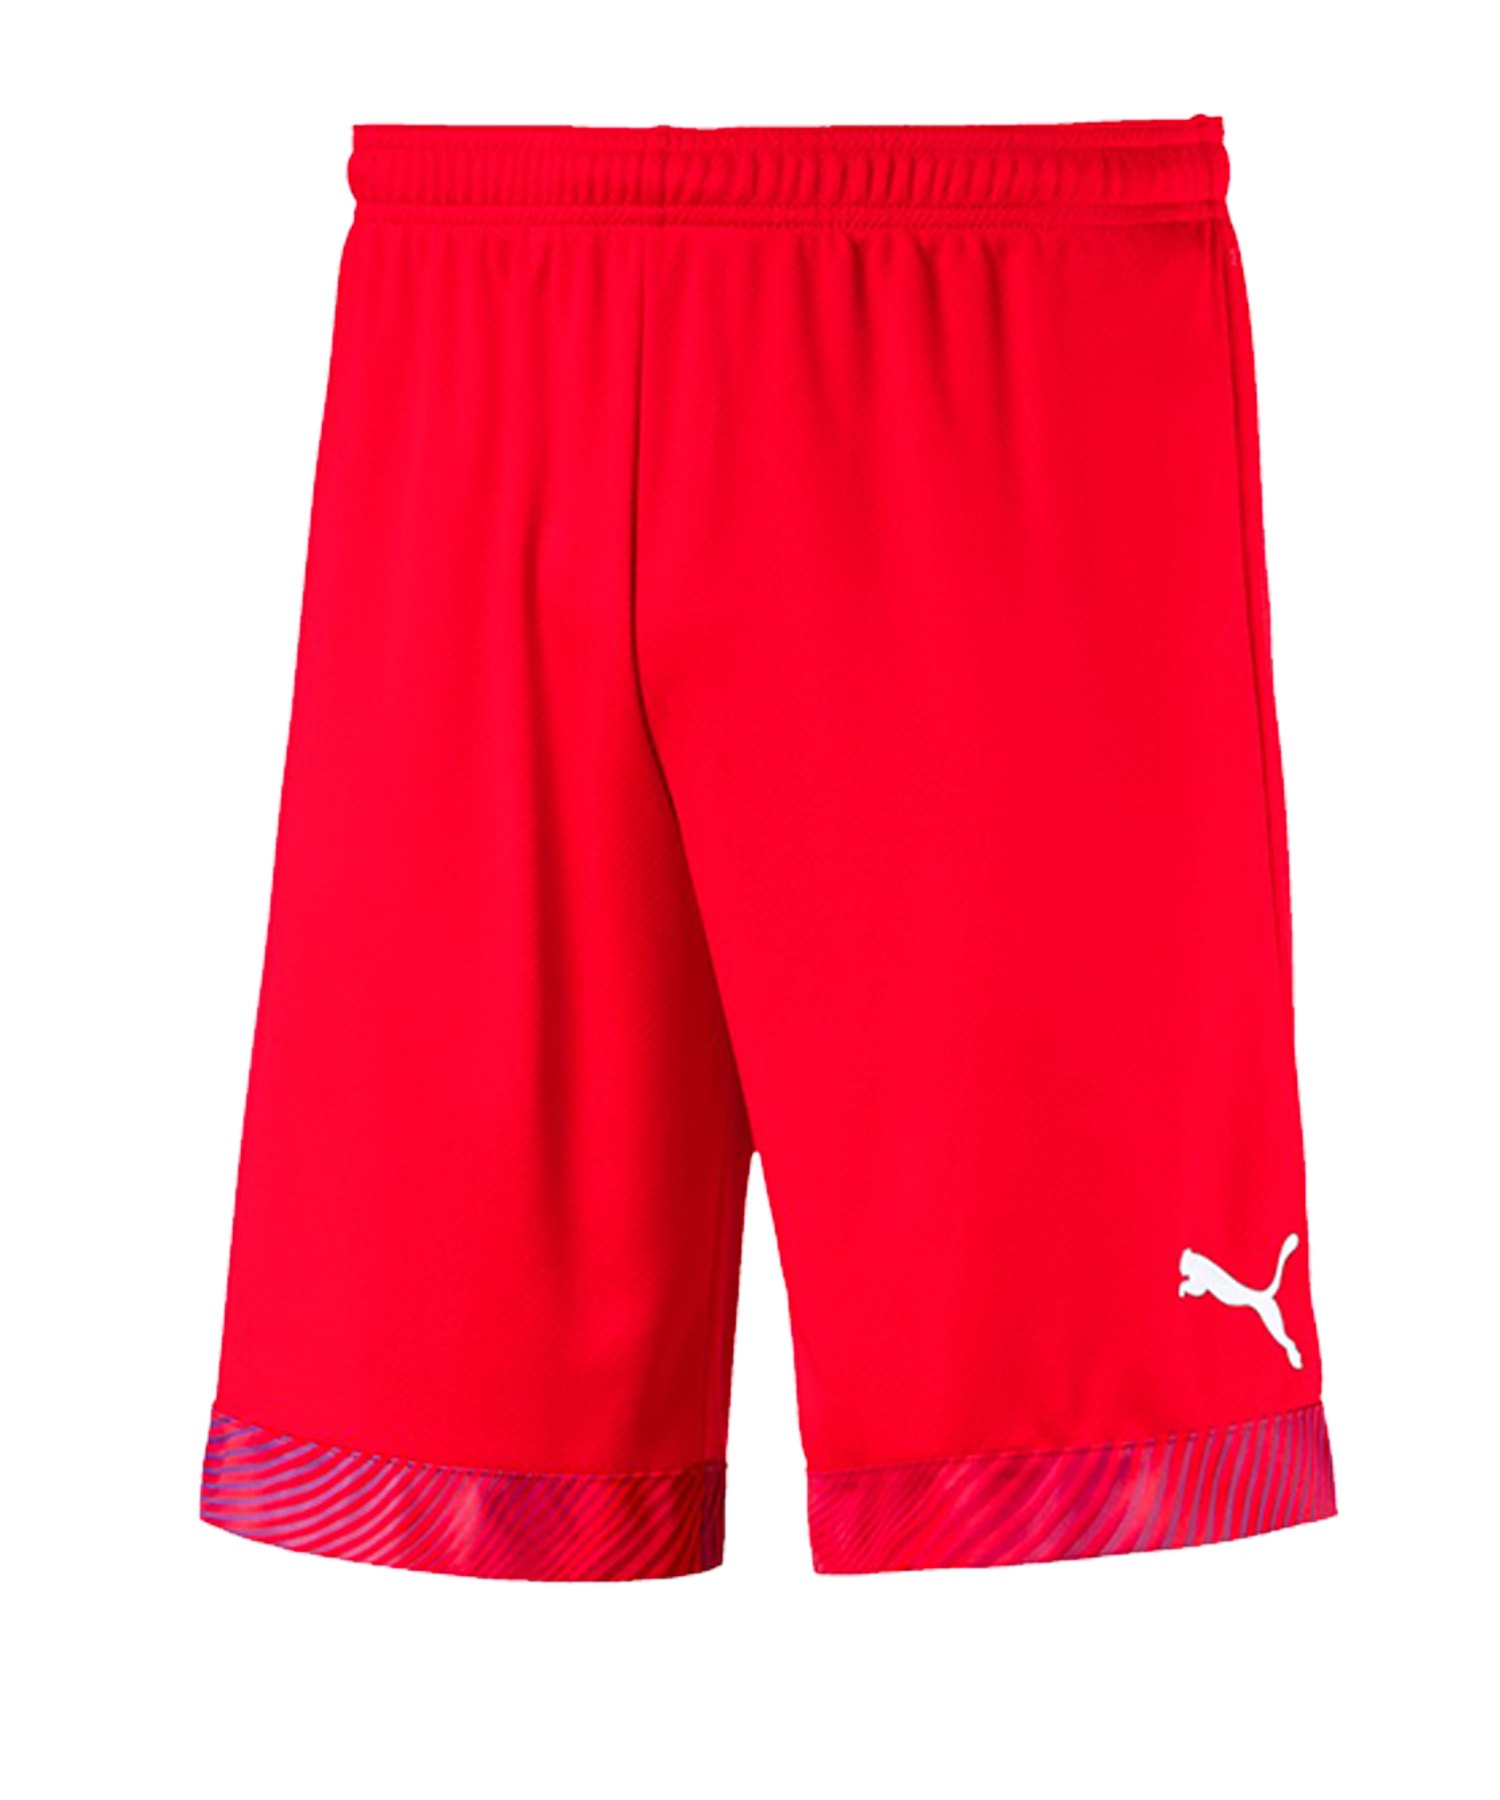 PUMA CUP Short Rot Weiss F01 - rot